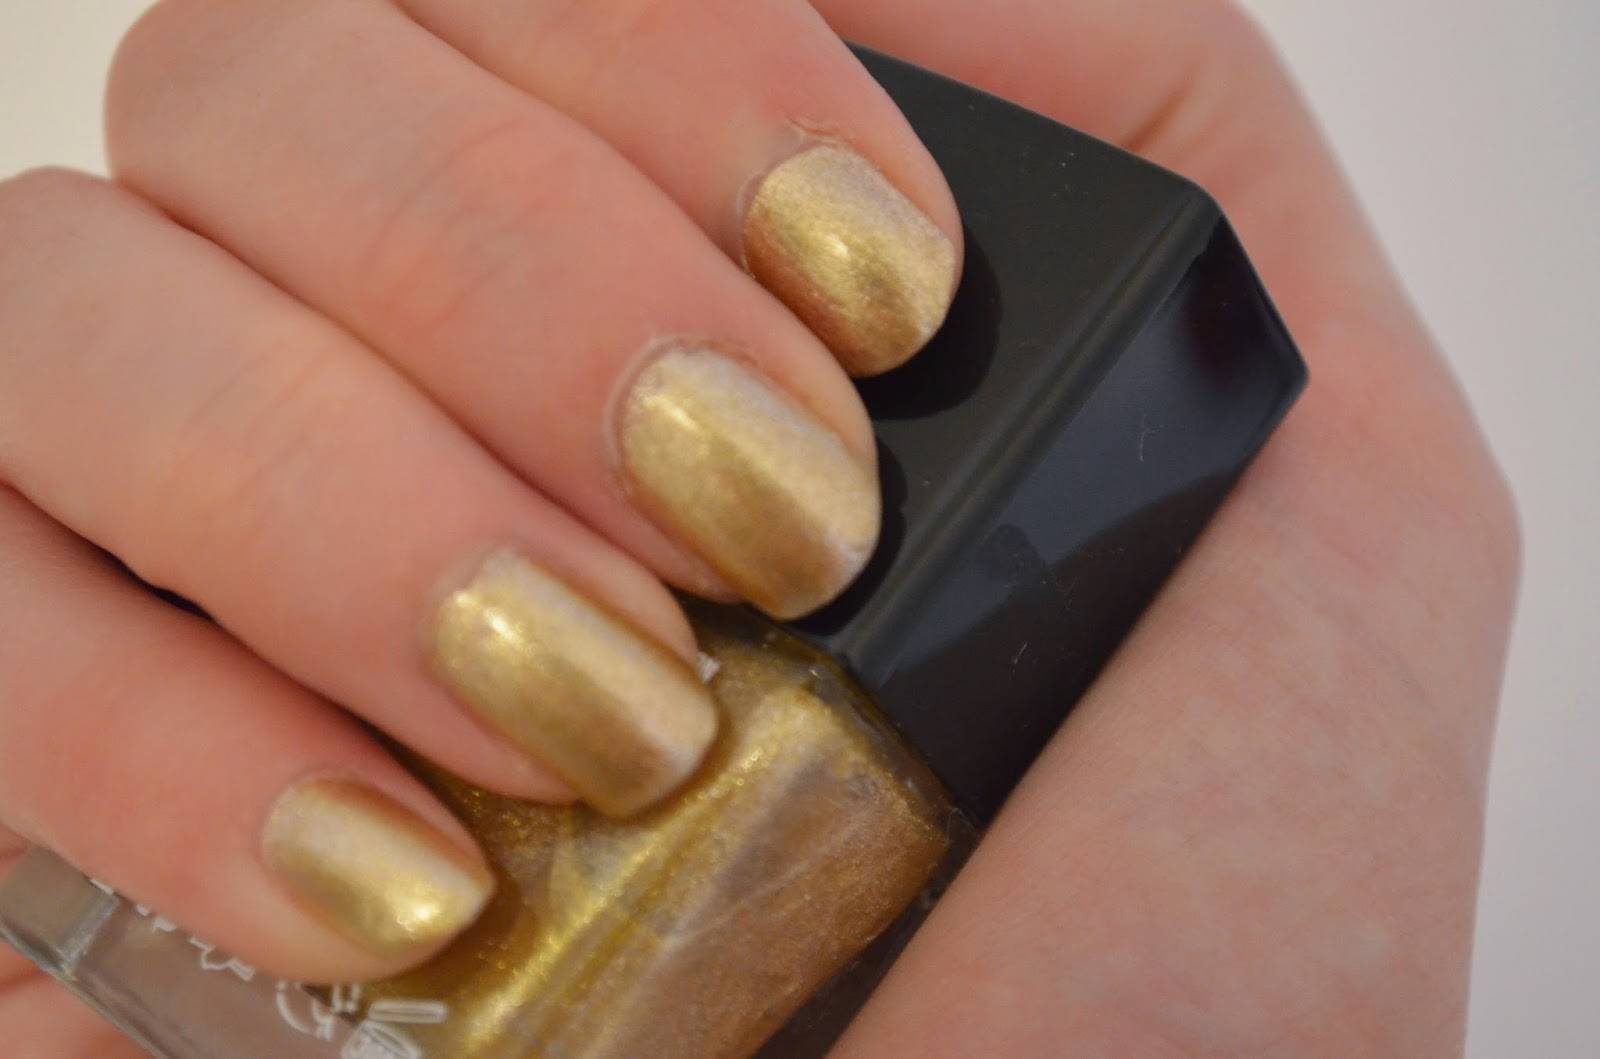 The Full MOnty Gold Nailpolish from Butter London